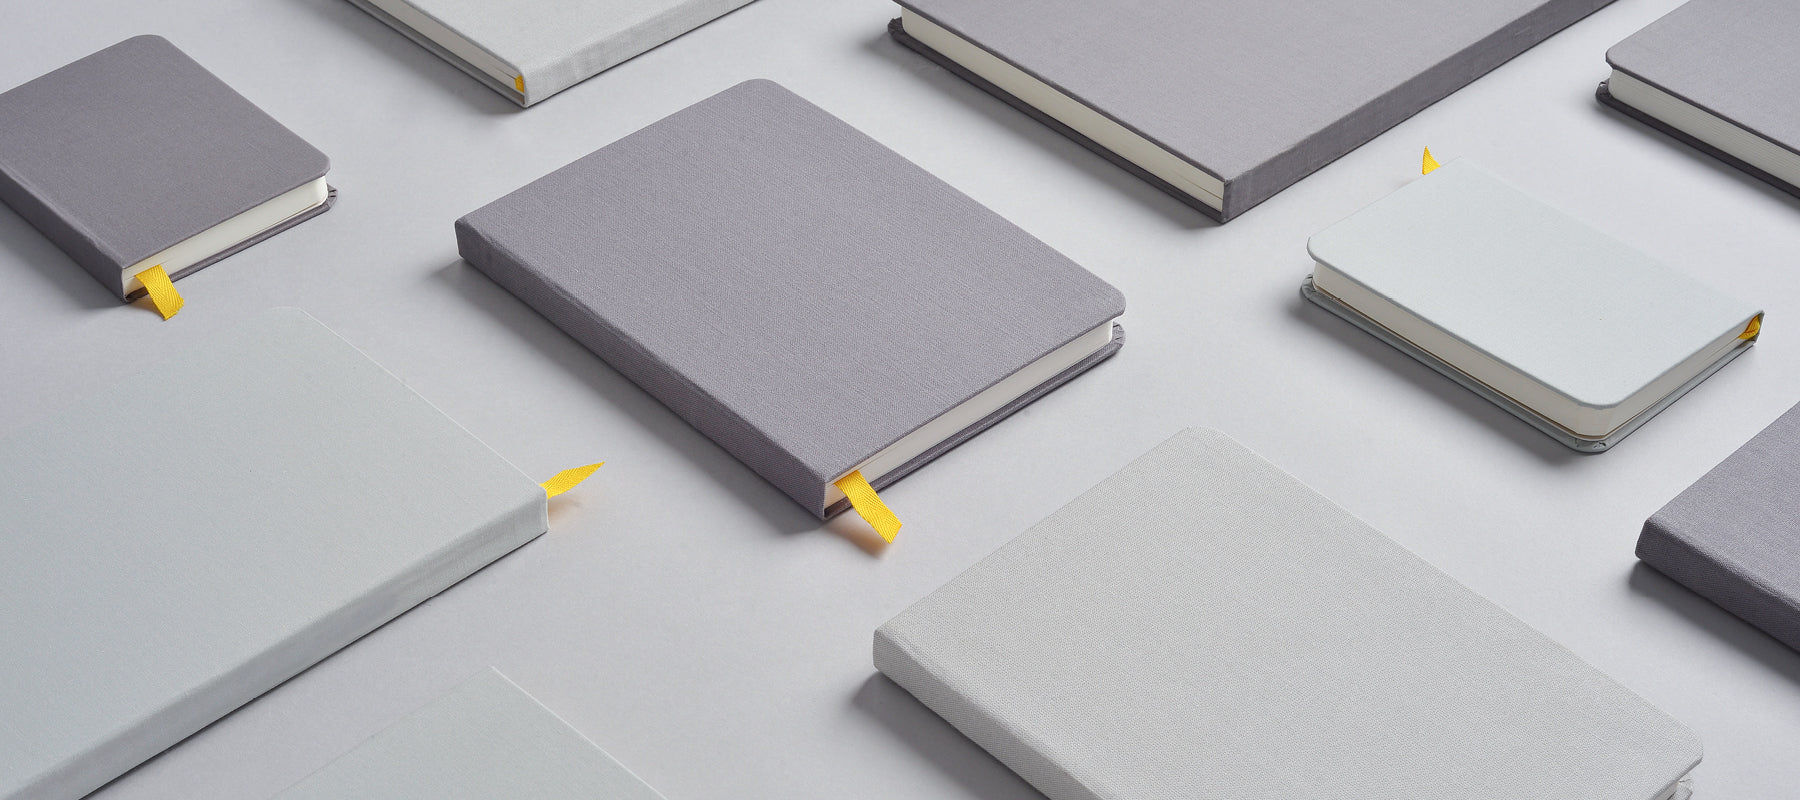 Assorted Confidant notebooks in charcoal and light gray